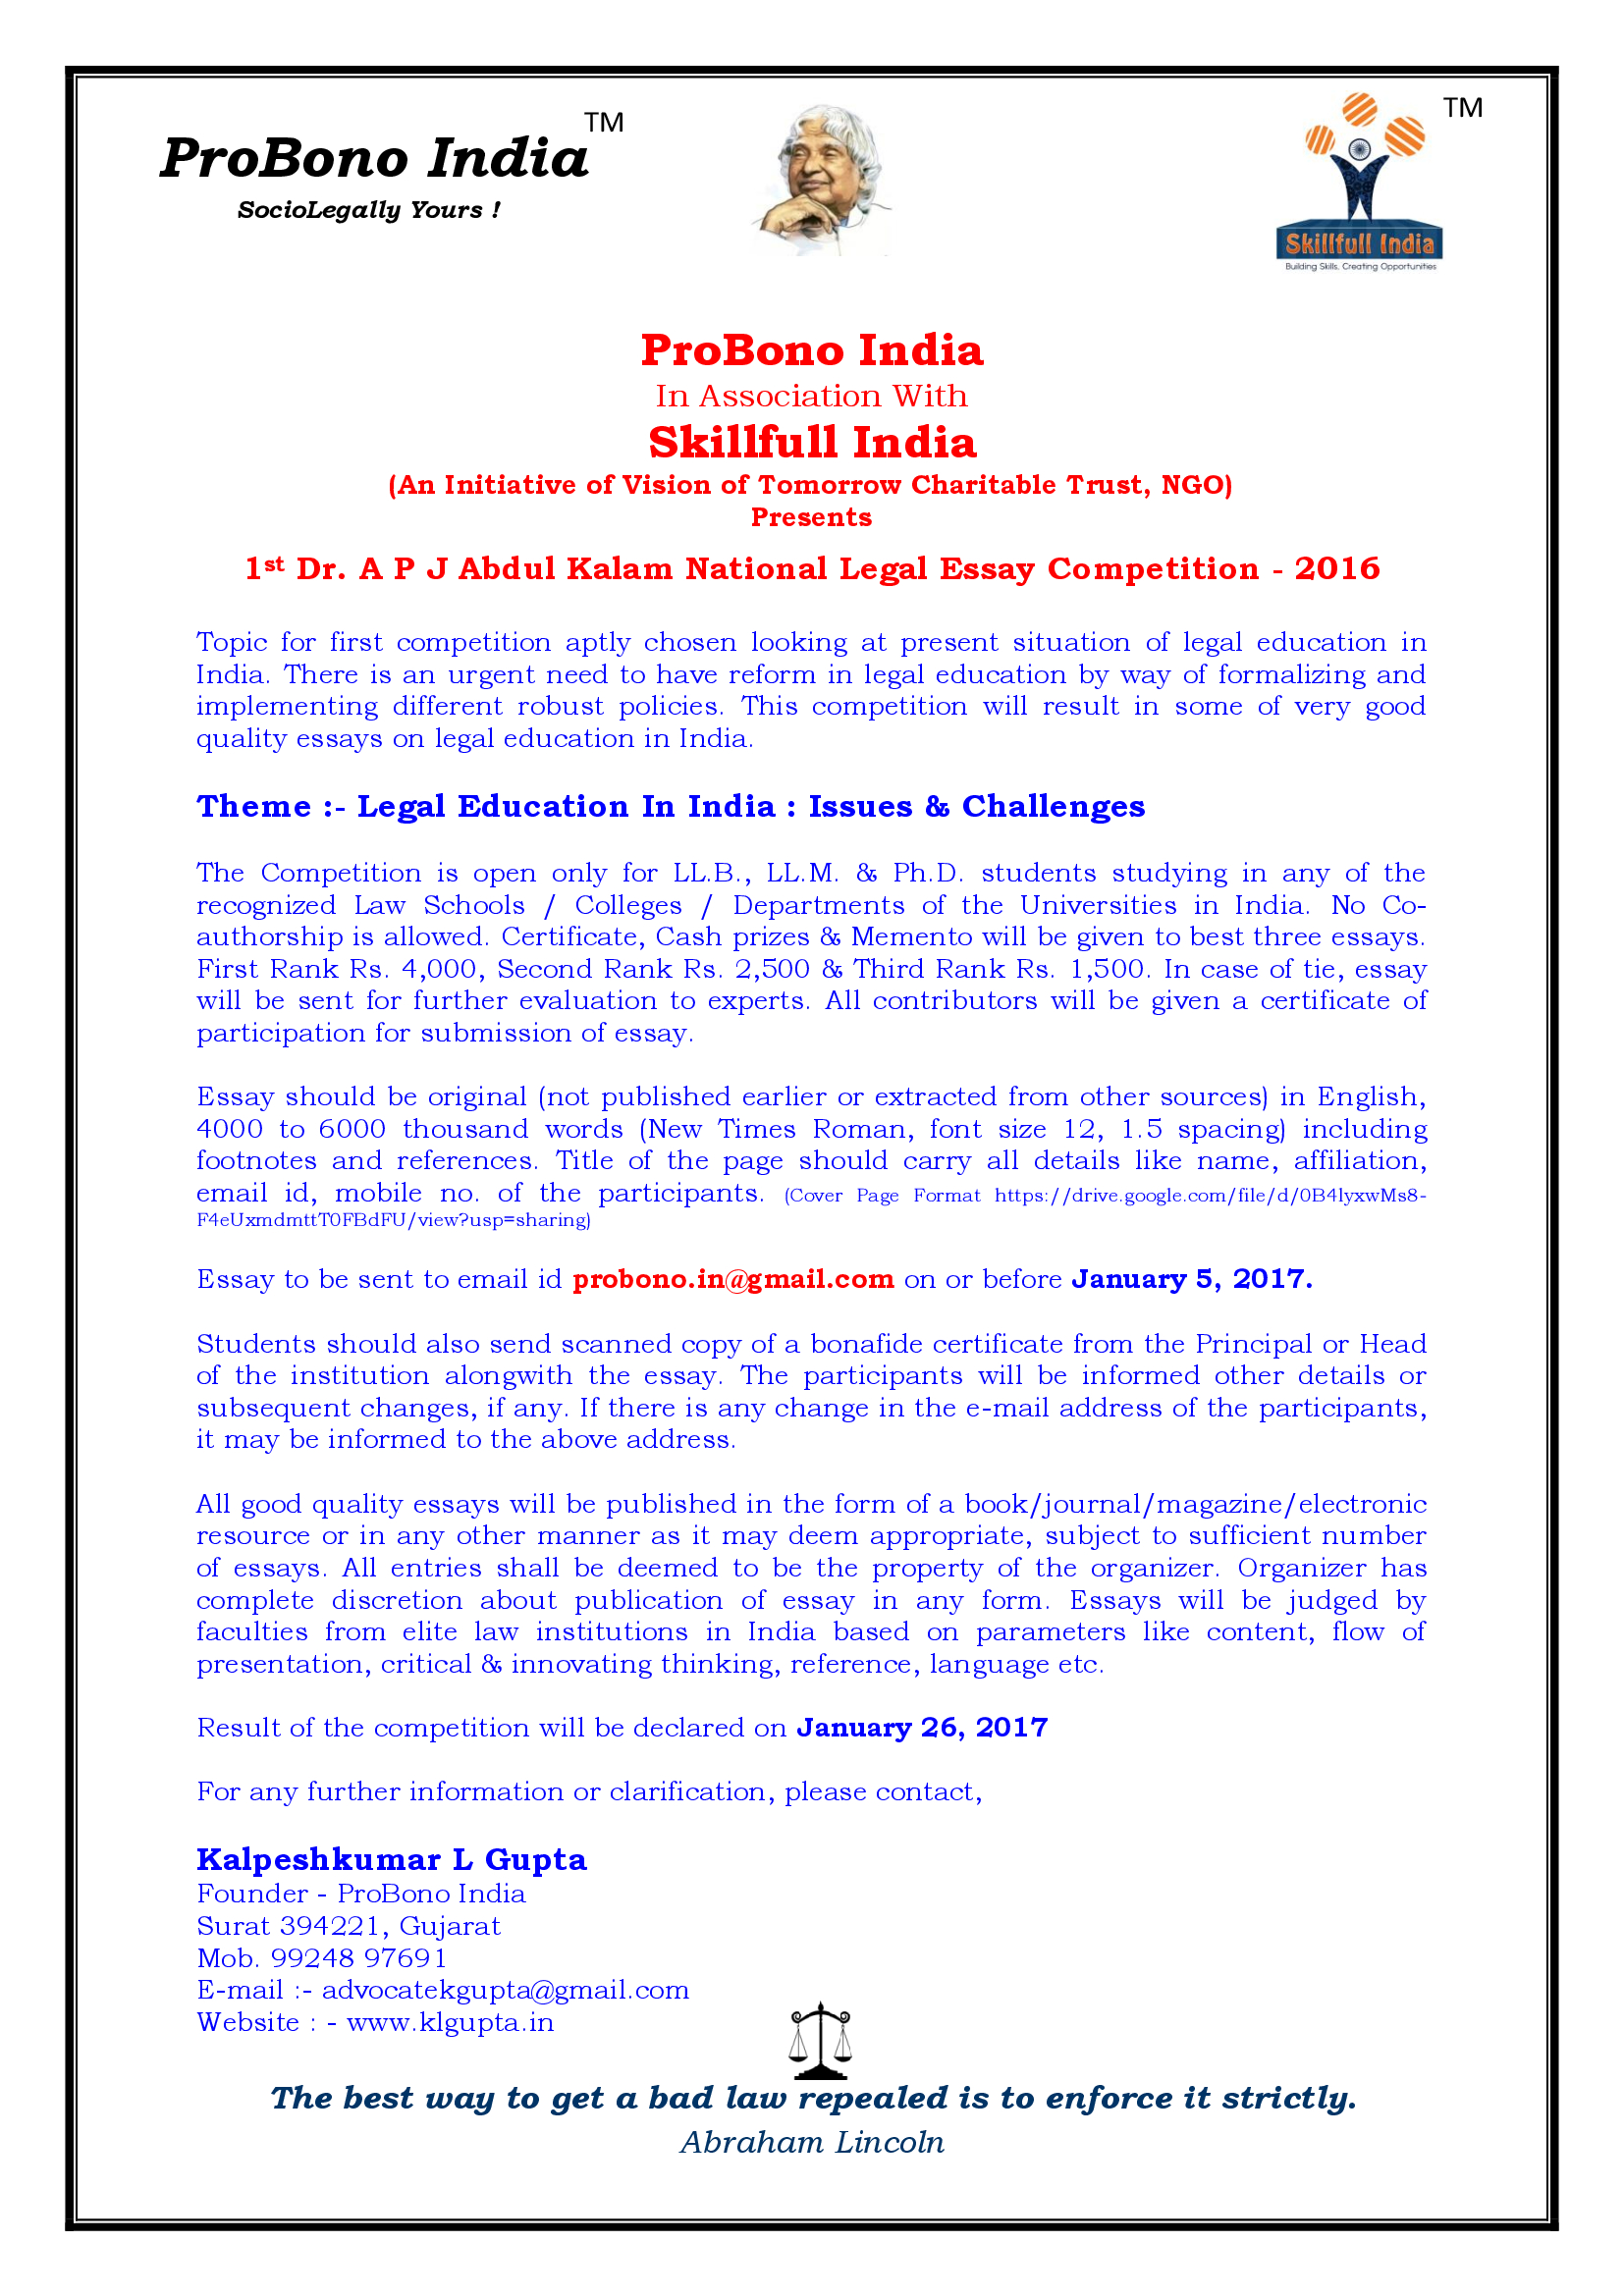 012 Essay Example Font Size 1st Dr P J Abdul Kalam National Level Competition With Skillfull Stunning Formal Apa Full